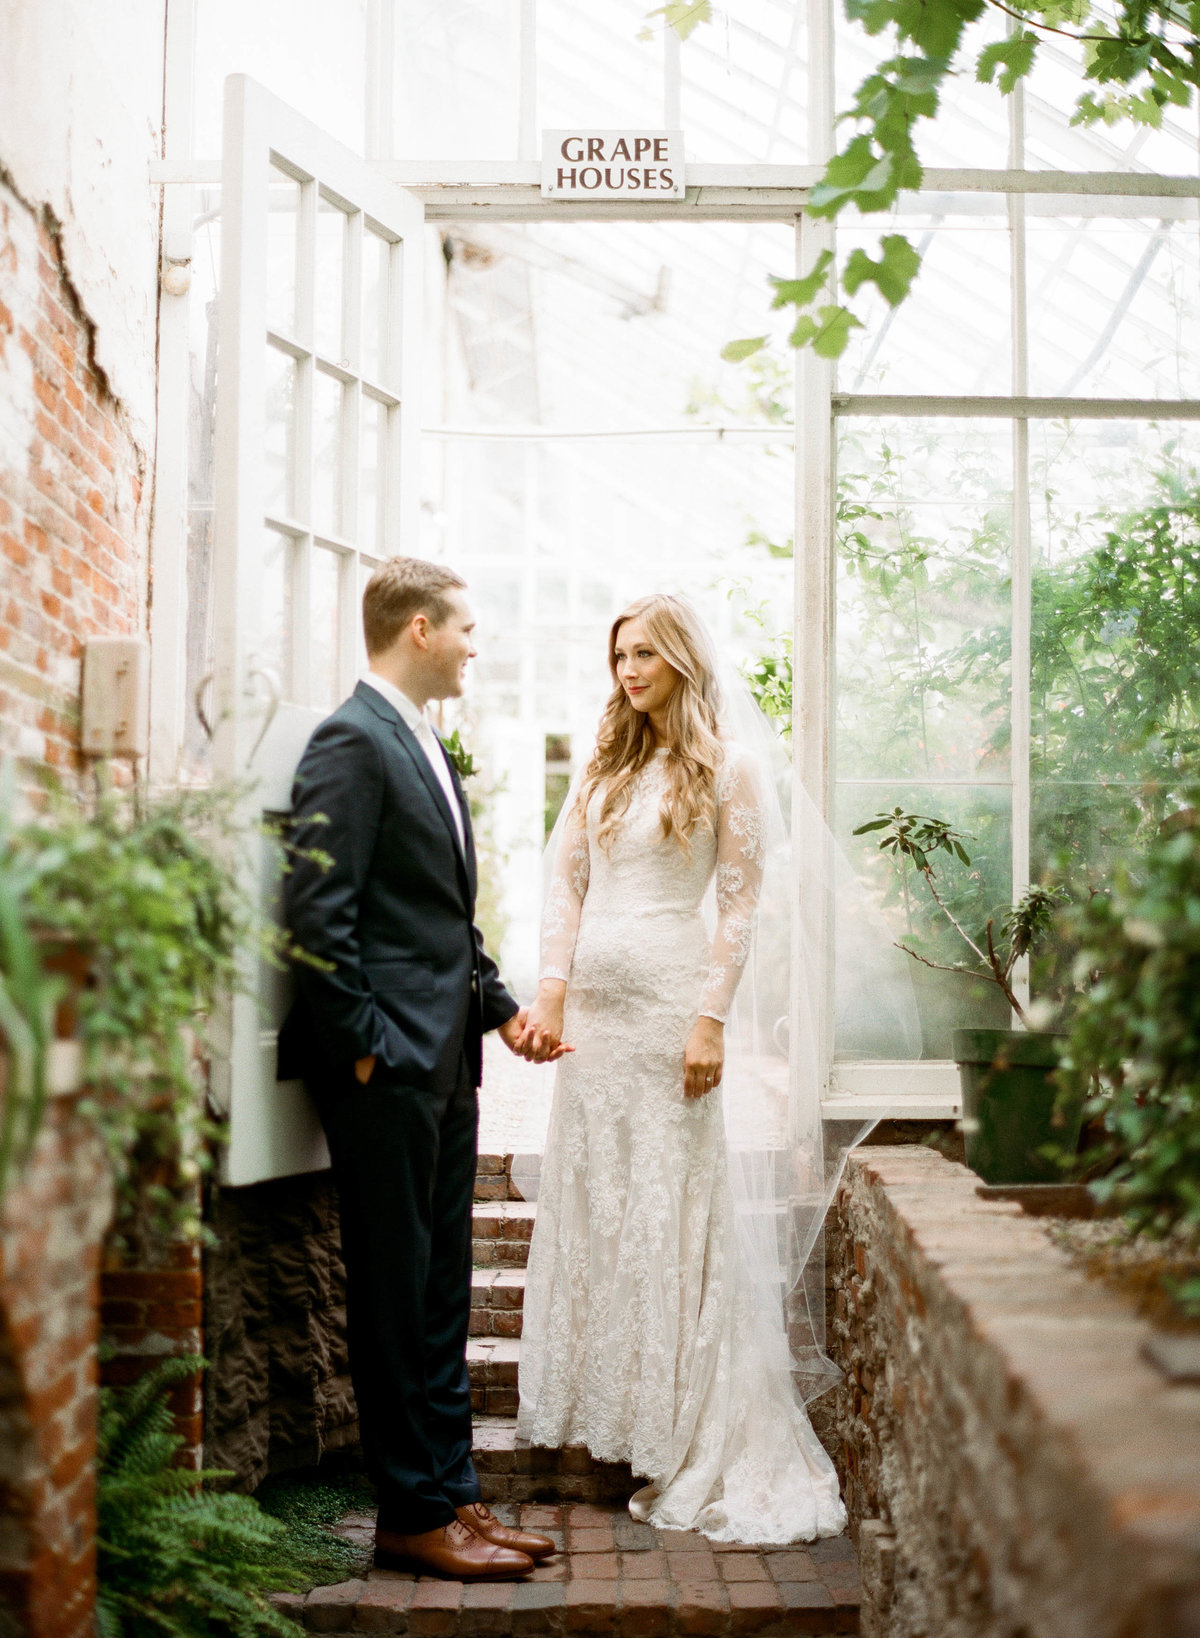 lyman estate bride and groom in greenhouse wedding